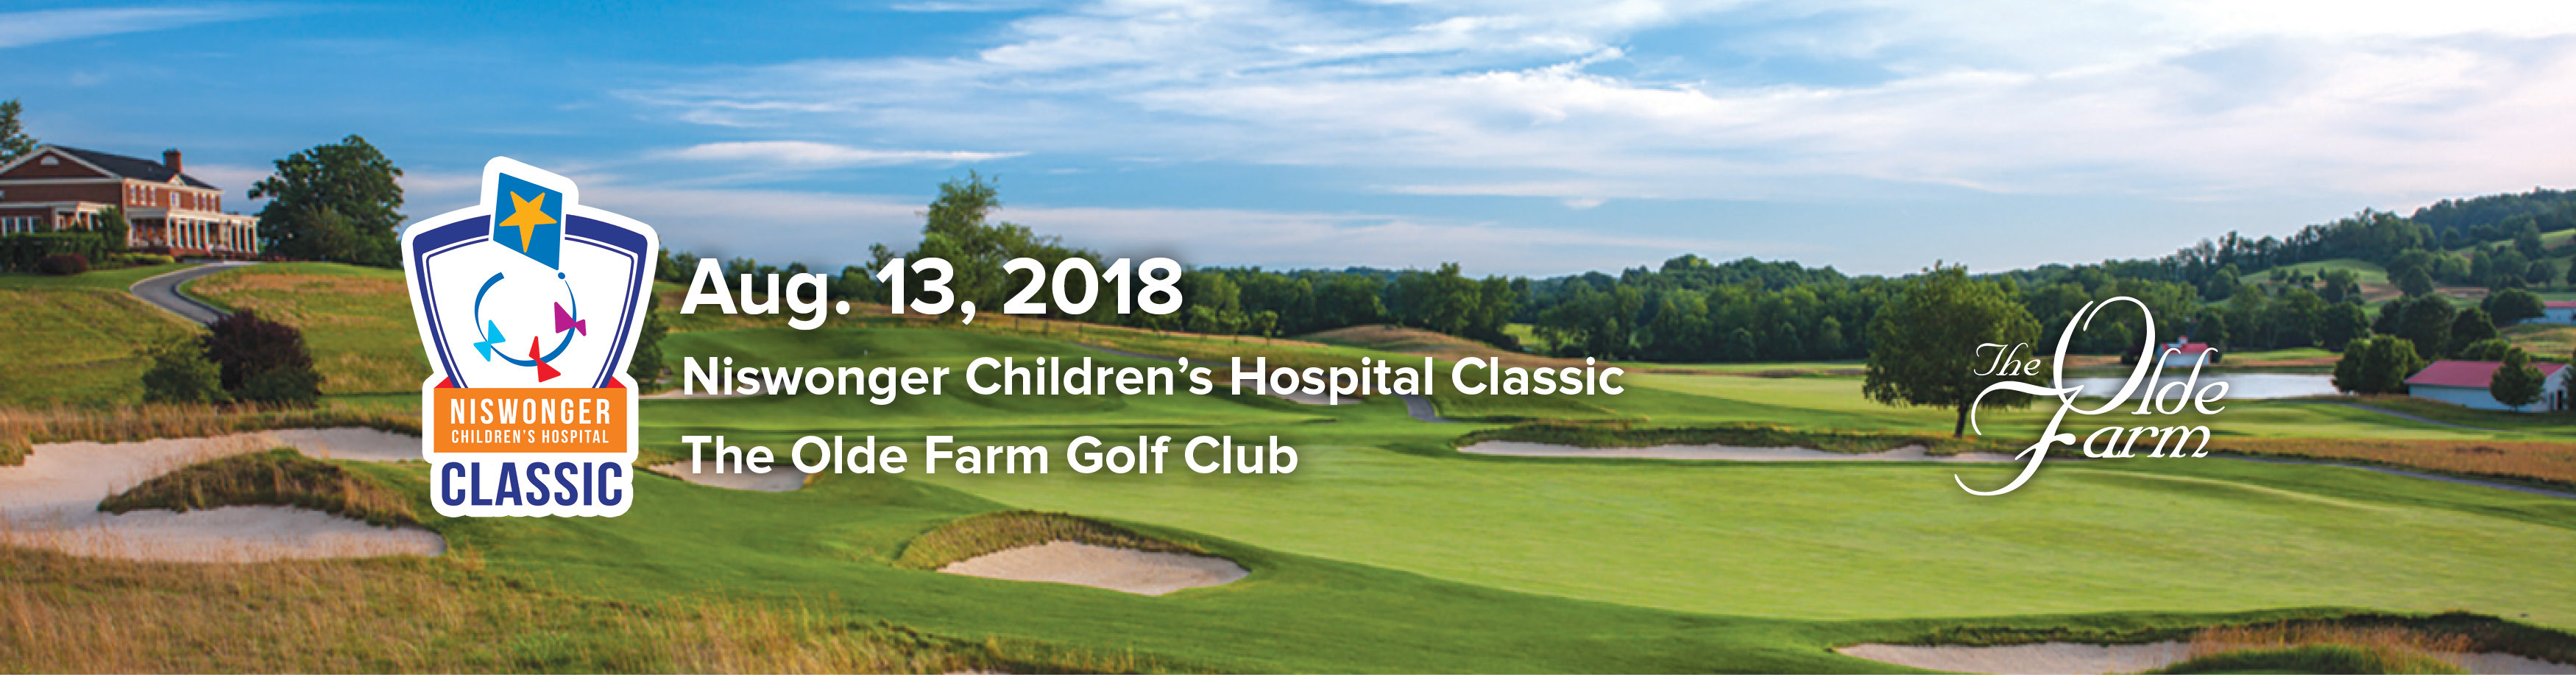 2018-Niswonger-Childrens-Hospital-Golf-Classic-1680x440